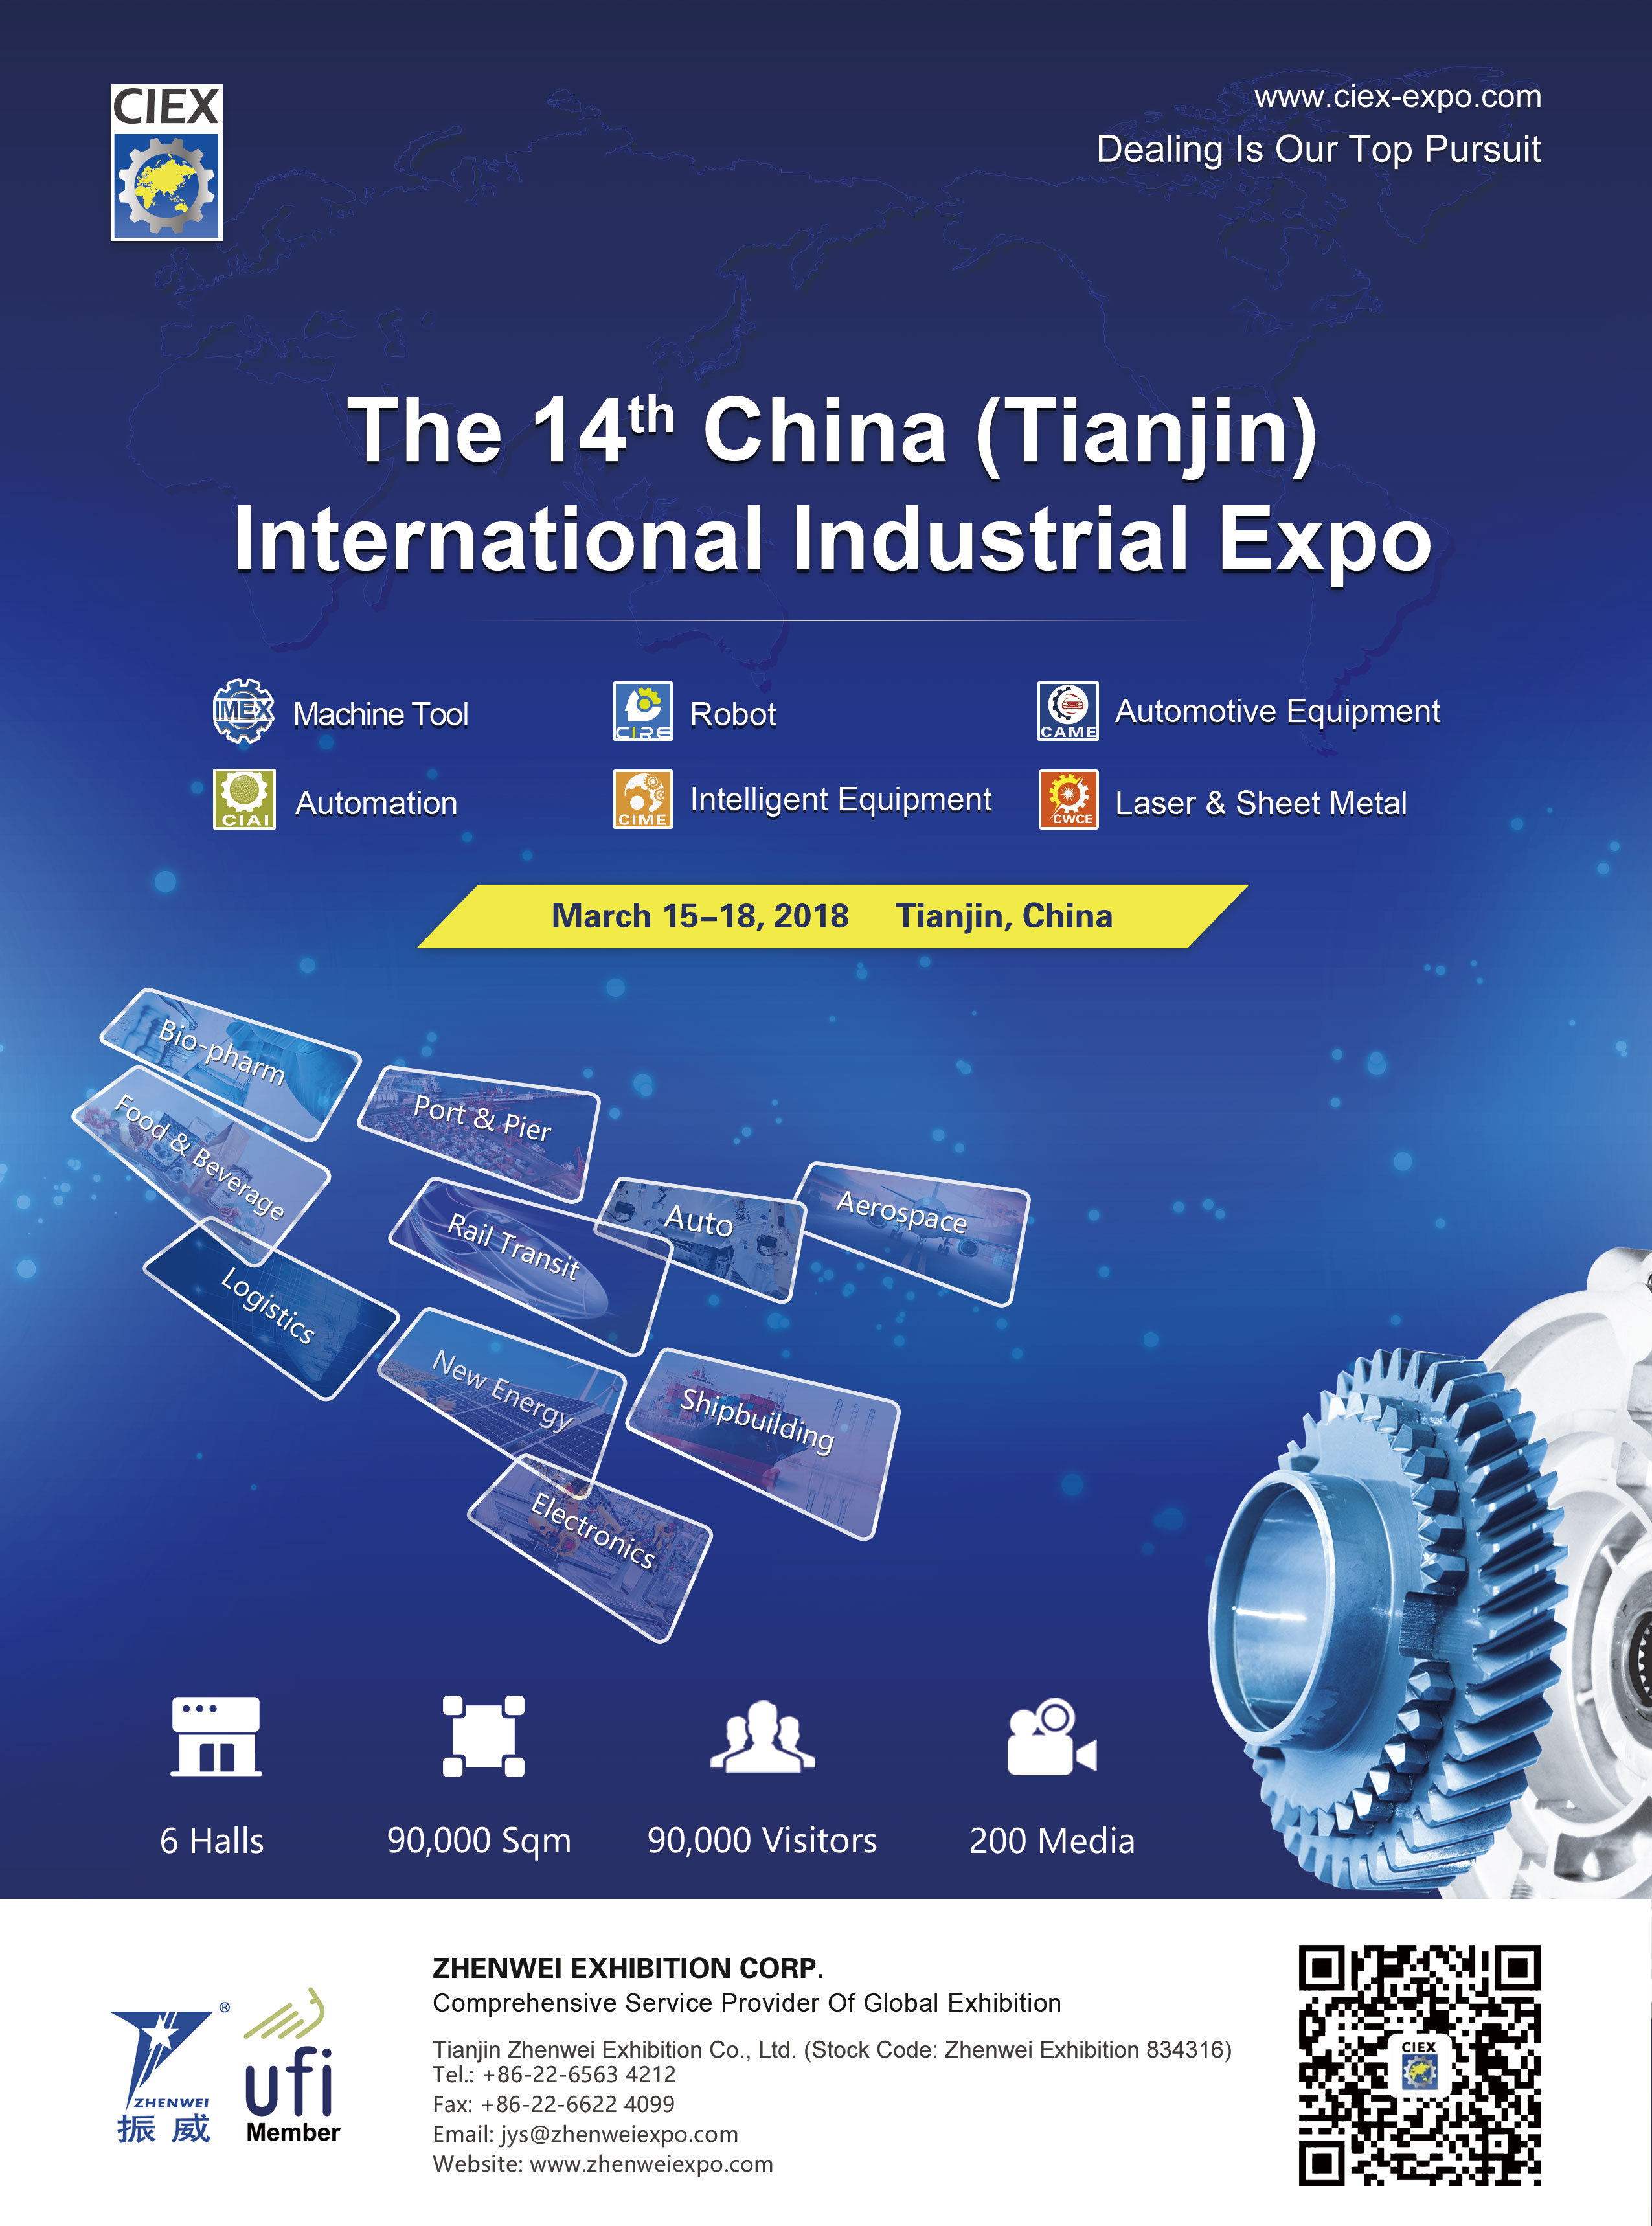 The 14th Tianjin International Industrial Expo. (CIEX2018)